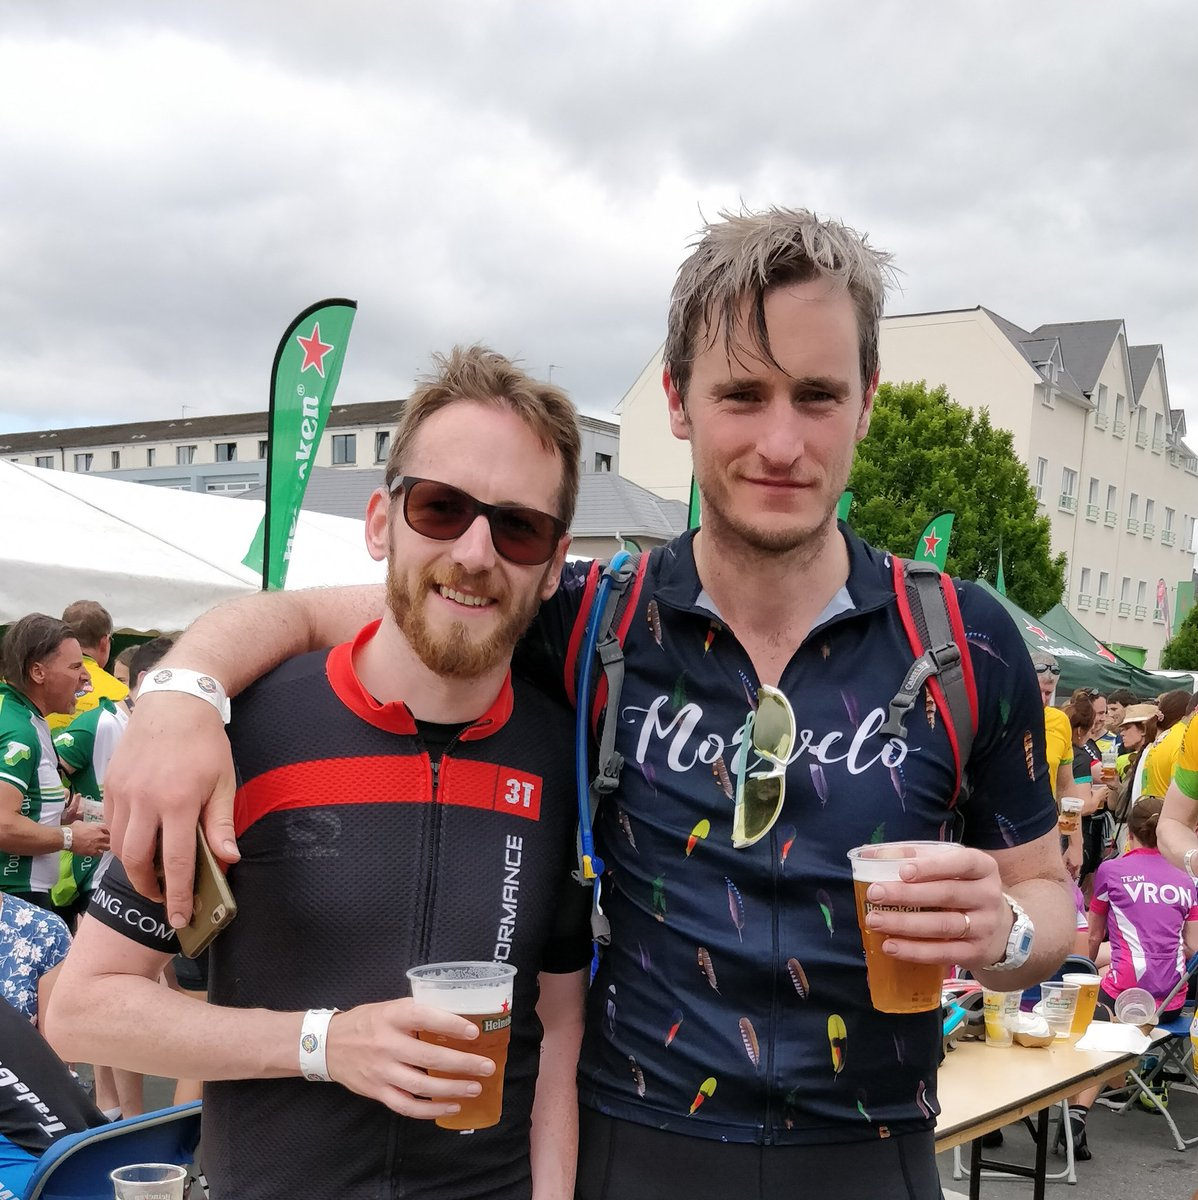 #ROKCharityCycle 2018 complete! Bring on Le Tour! Cracking day as ever! @_olderandcolder